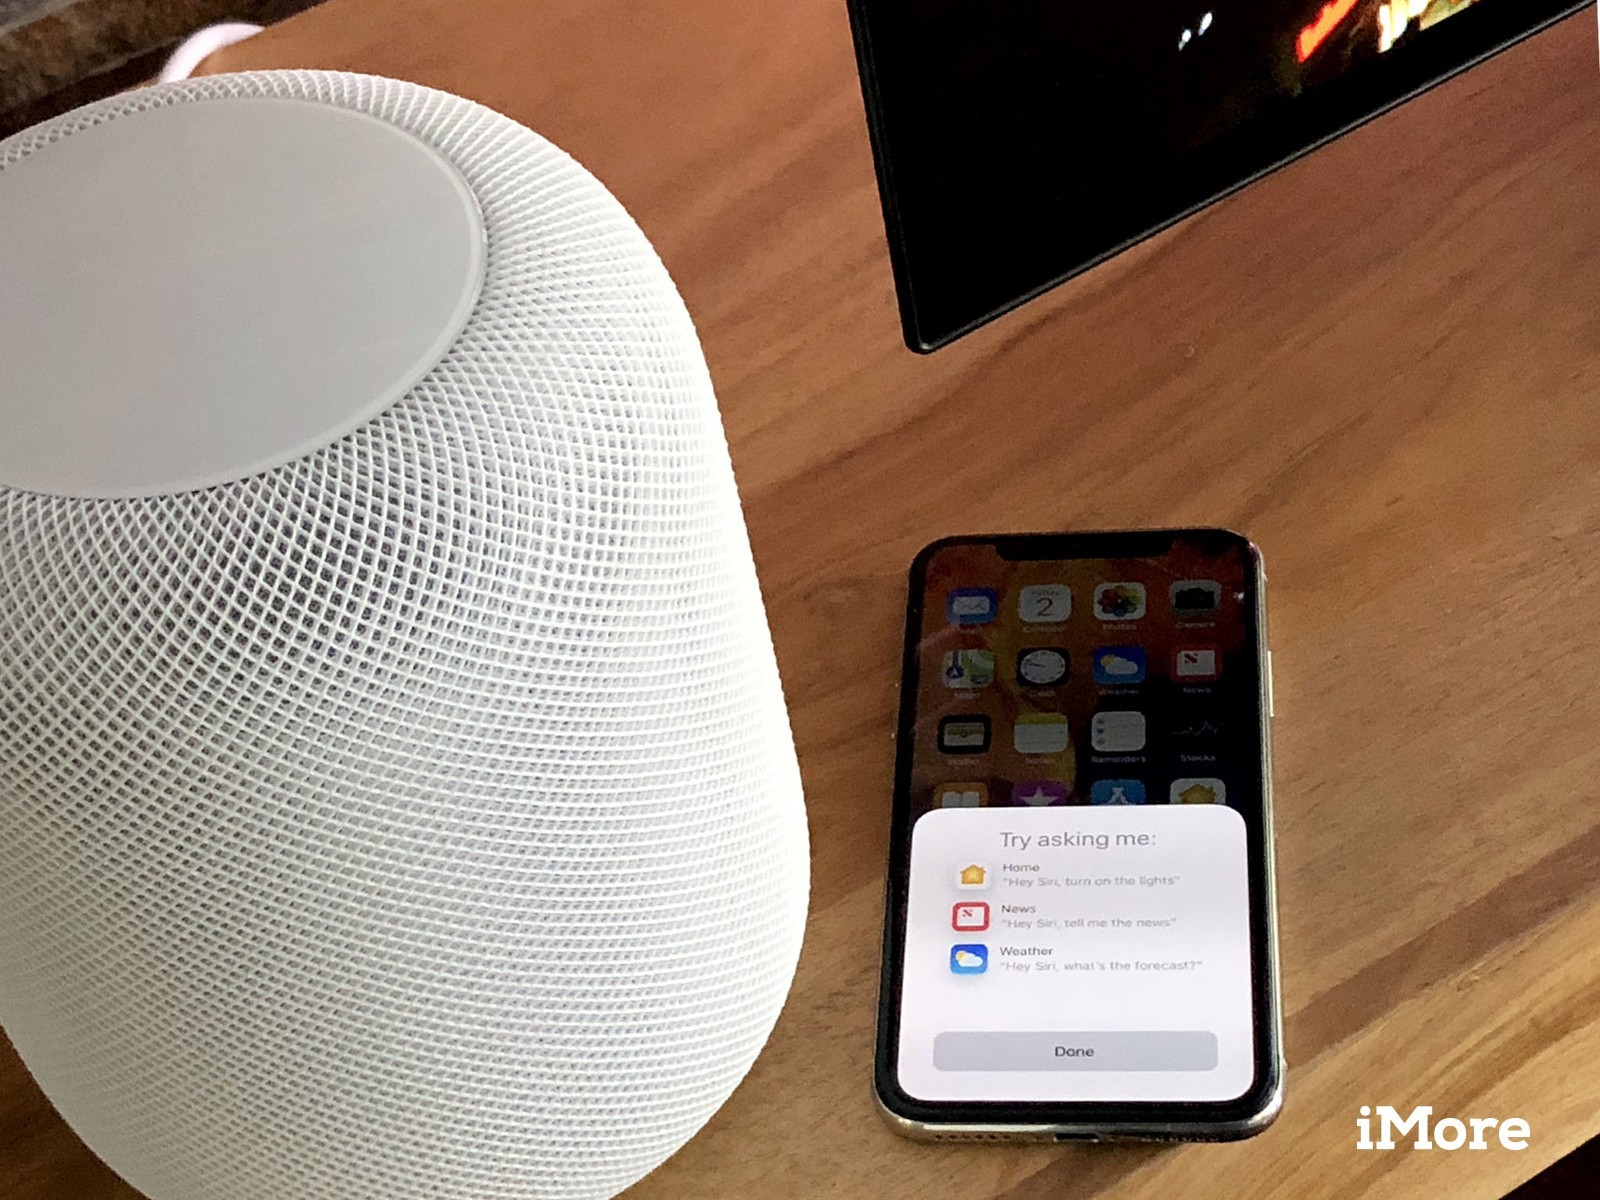 Wallpaper Dinding Minimalis Terbaik Untuk Homepod Review Retina for Your Ears Of Wallpaper Dinding Minimalis Terbaik Untuk 25 Best Hotels In Barcelona Condé Nast Traveler